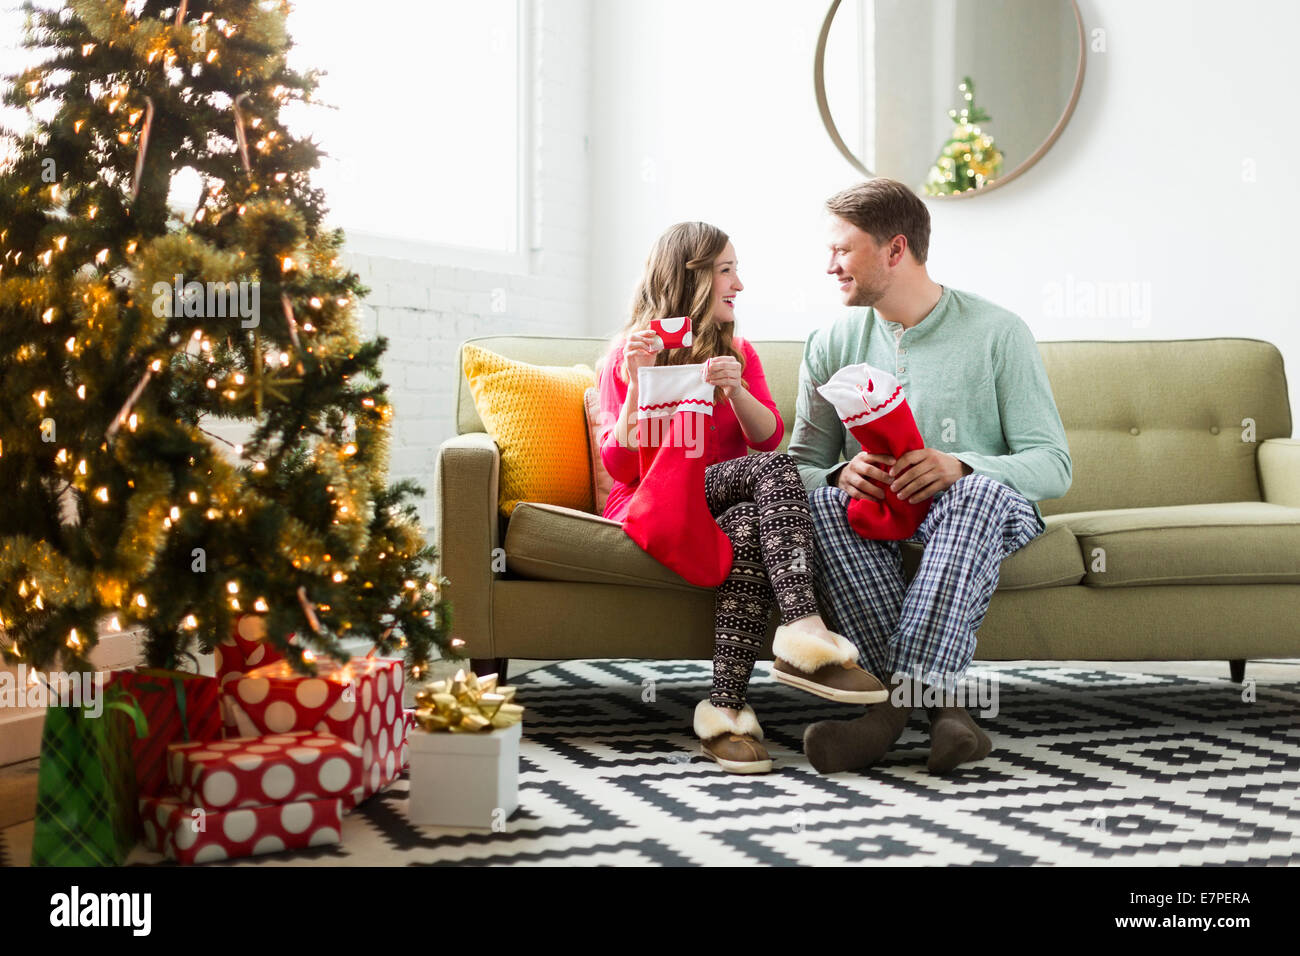 Young couple with Christmas stockings on sofa Stock Photo